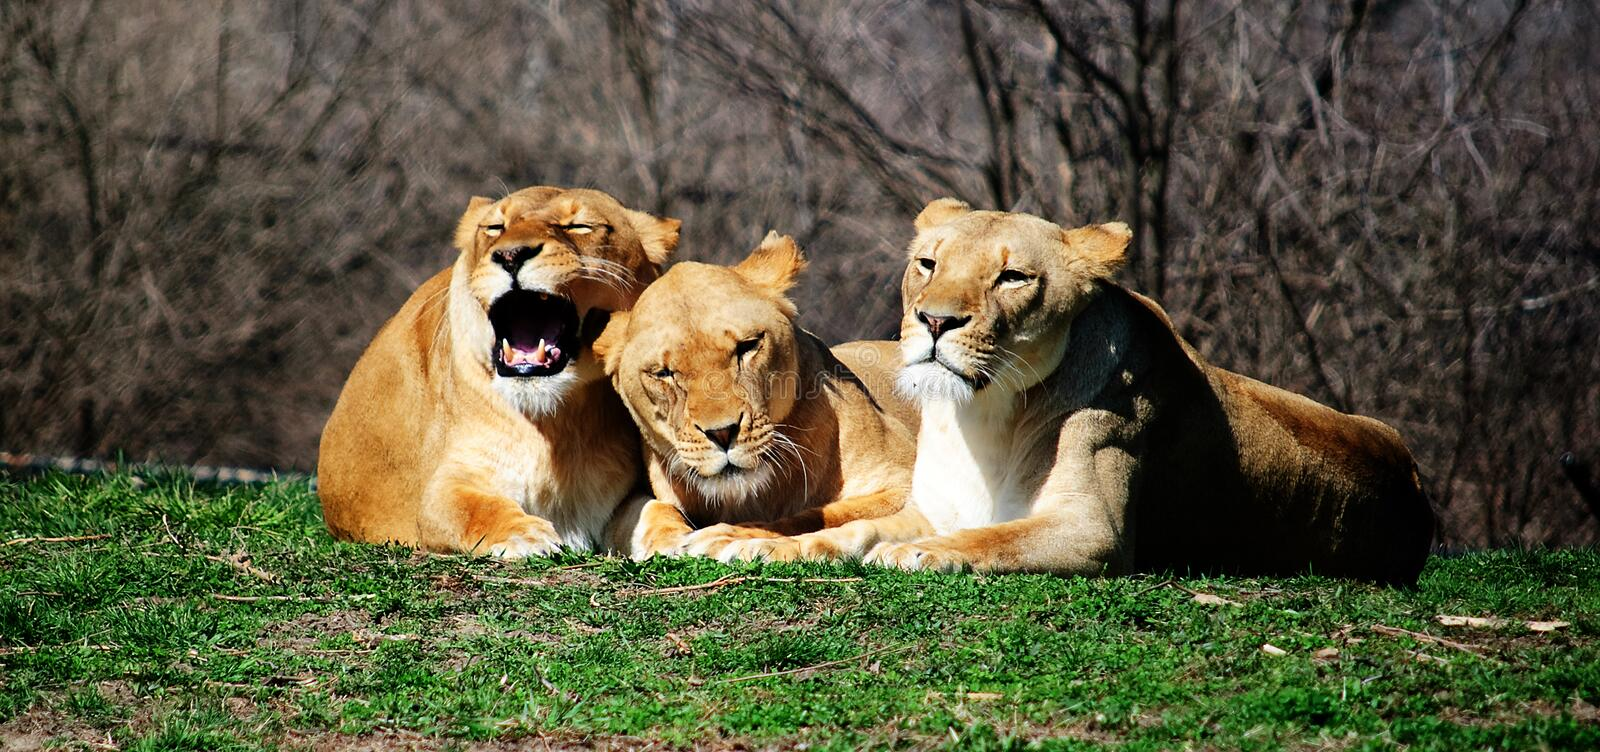 Download Lions stock photo. Image of looking, cuddling, grass, nature - 8607958